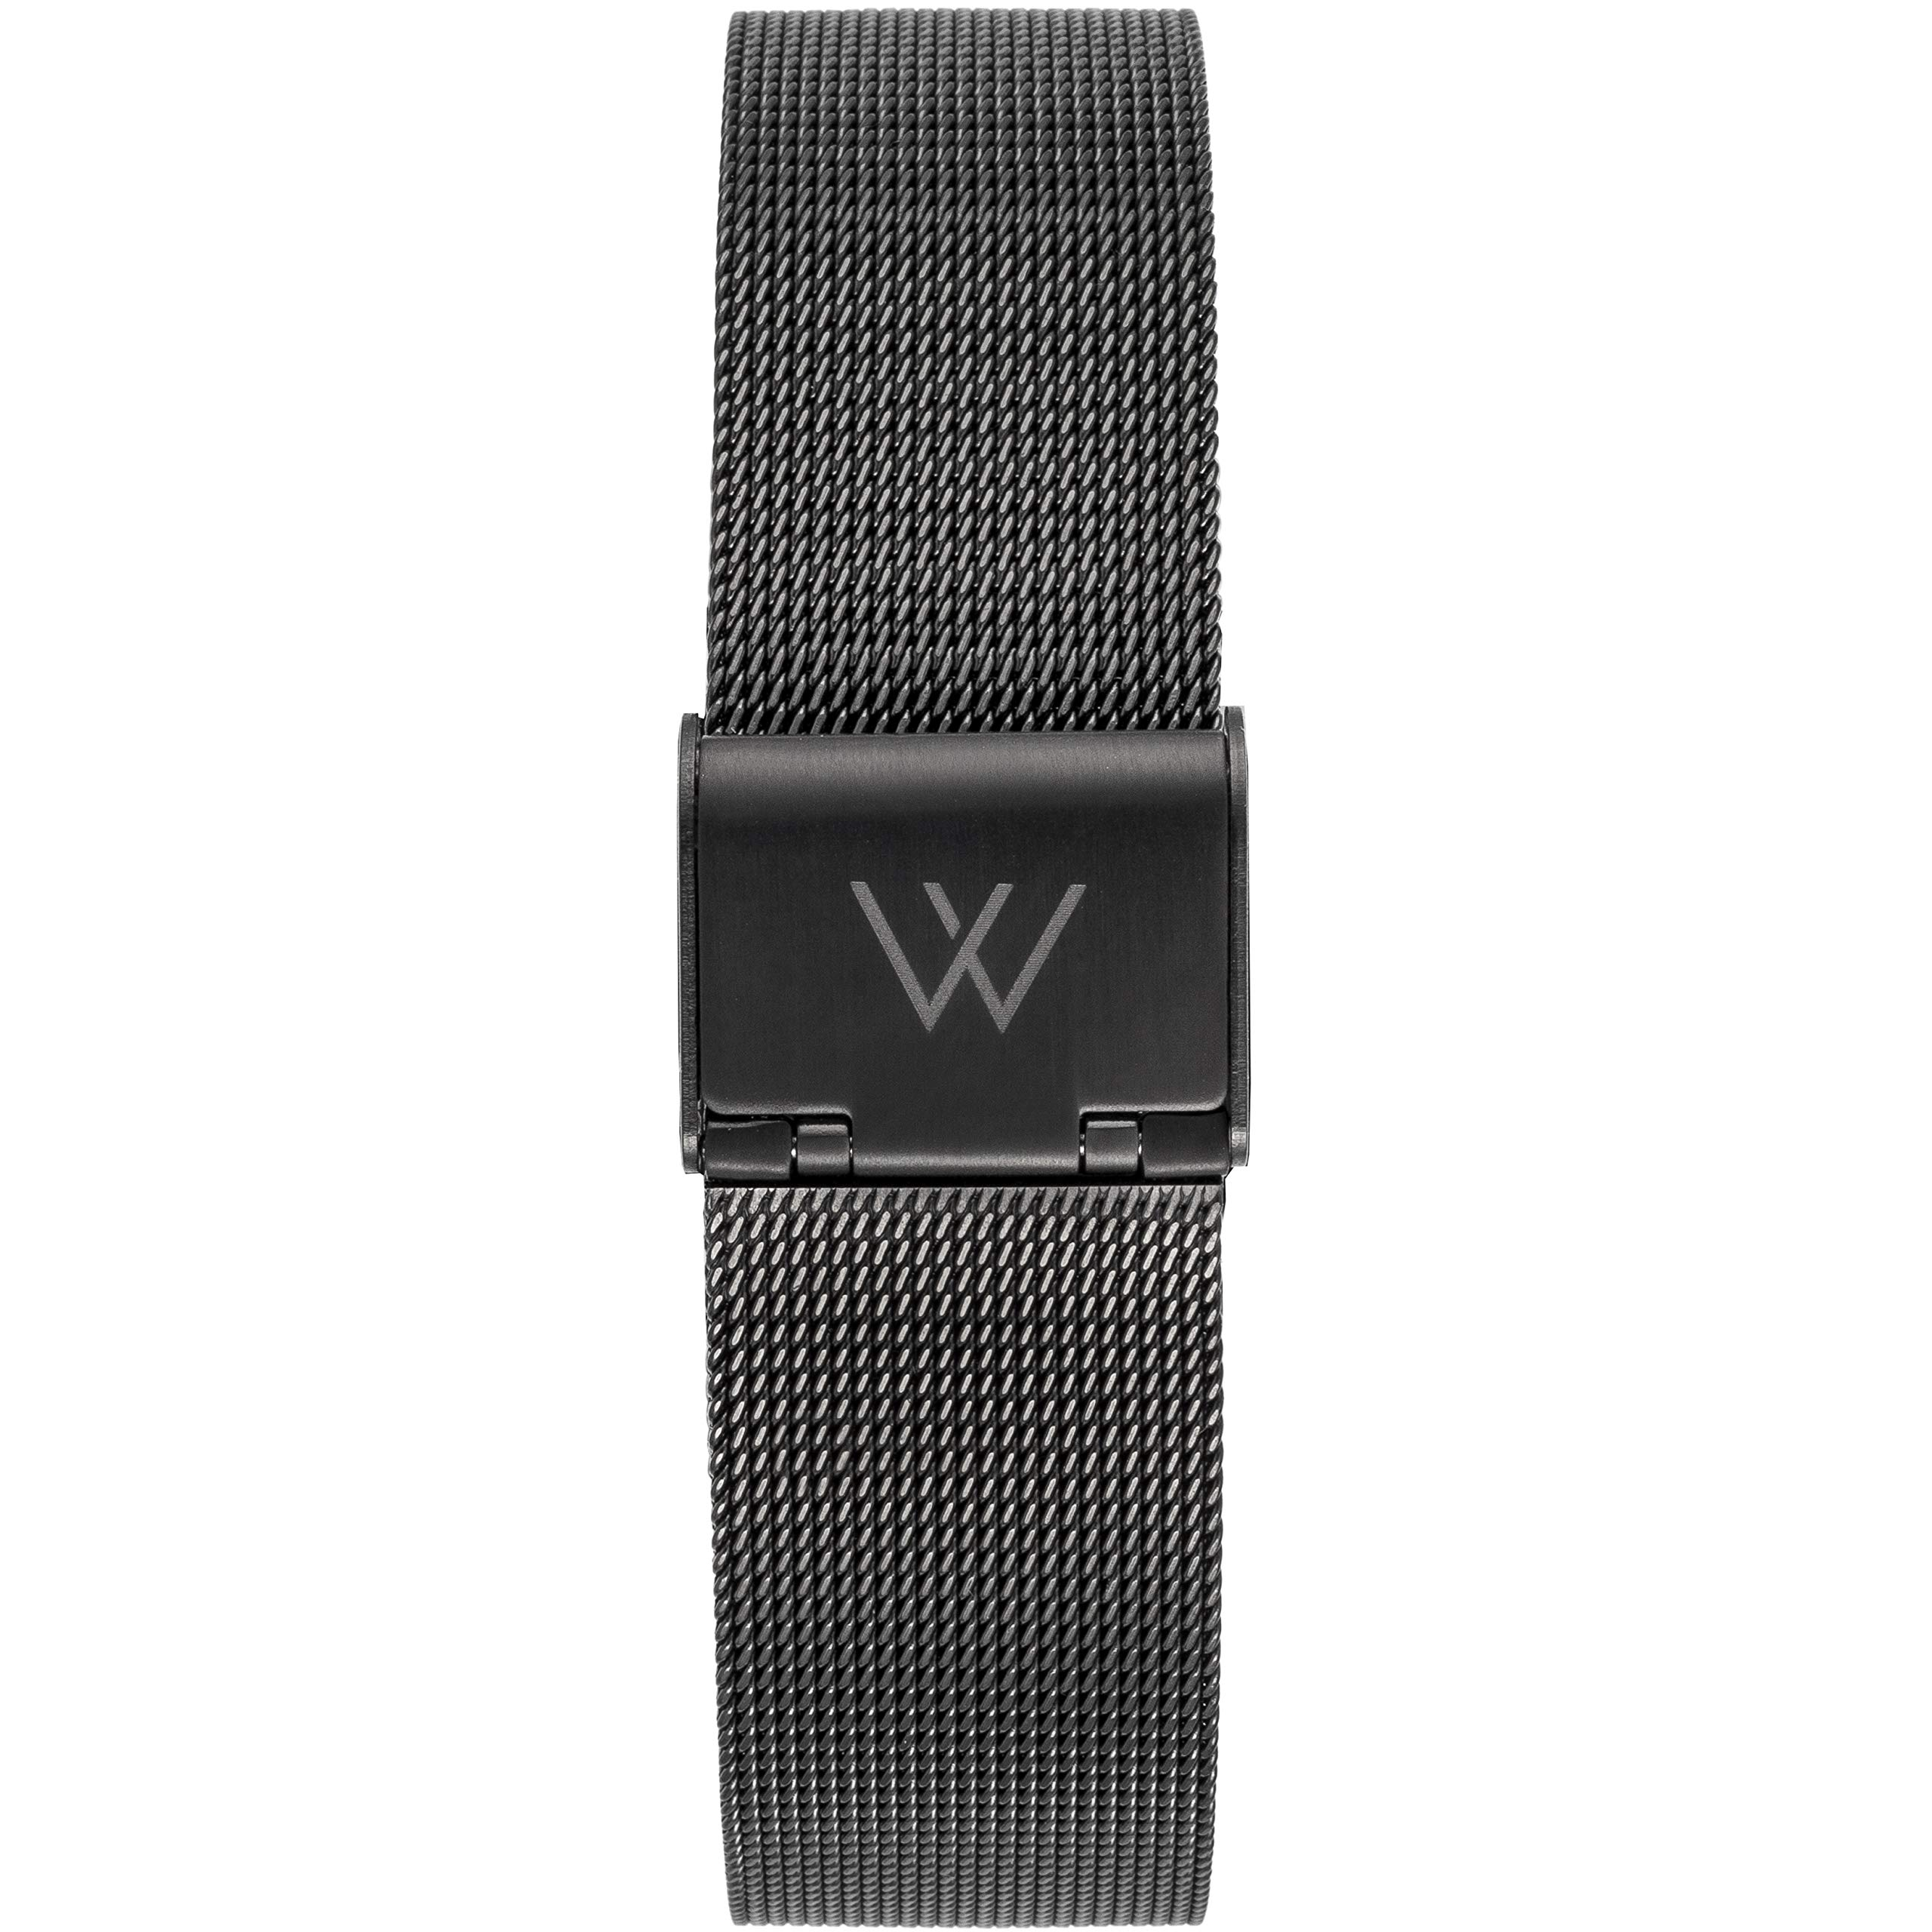 WRISTOLOGY Quick Release Adjustable Interchangeable Metal Link Mesh Milanese Stainless Steel Watch Band in Silver Rose Gold for Men Women - 14 16 18 20 MM